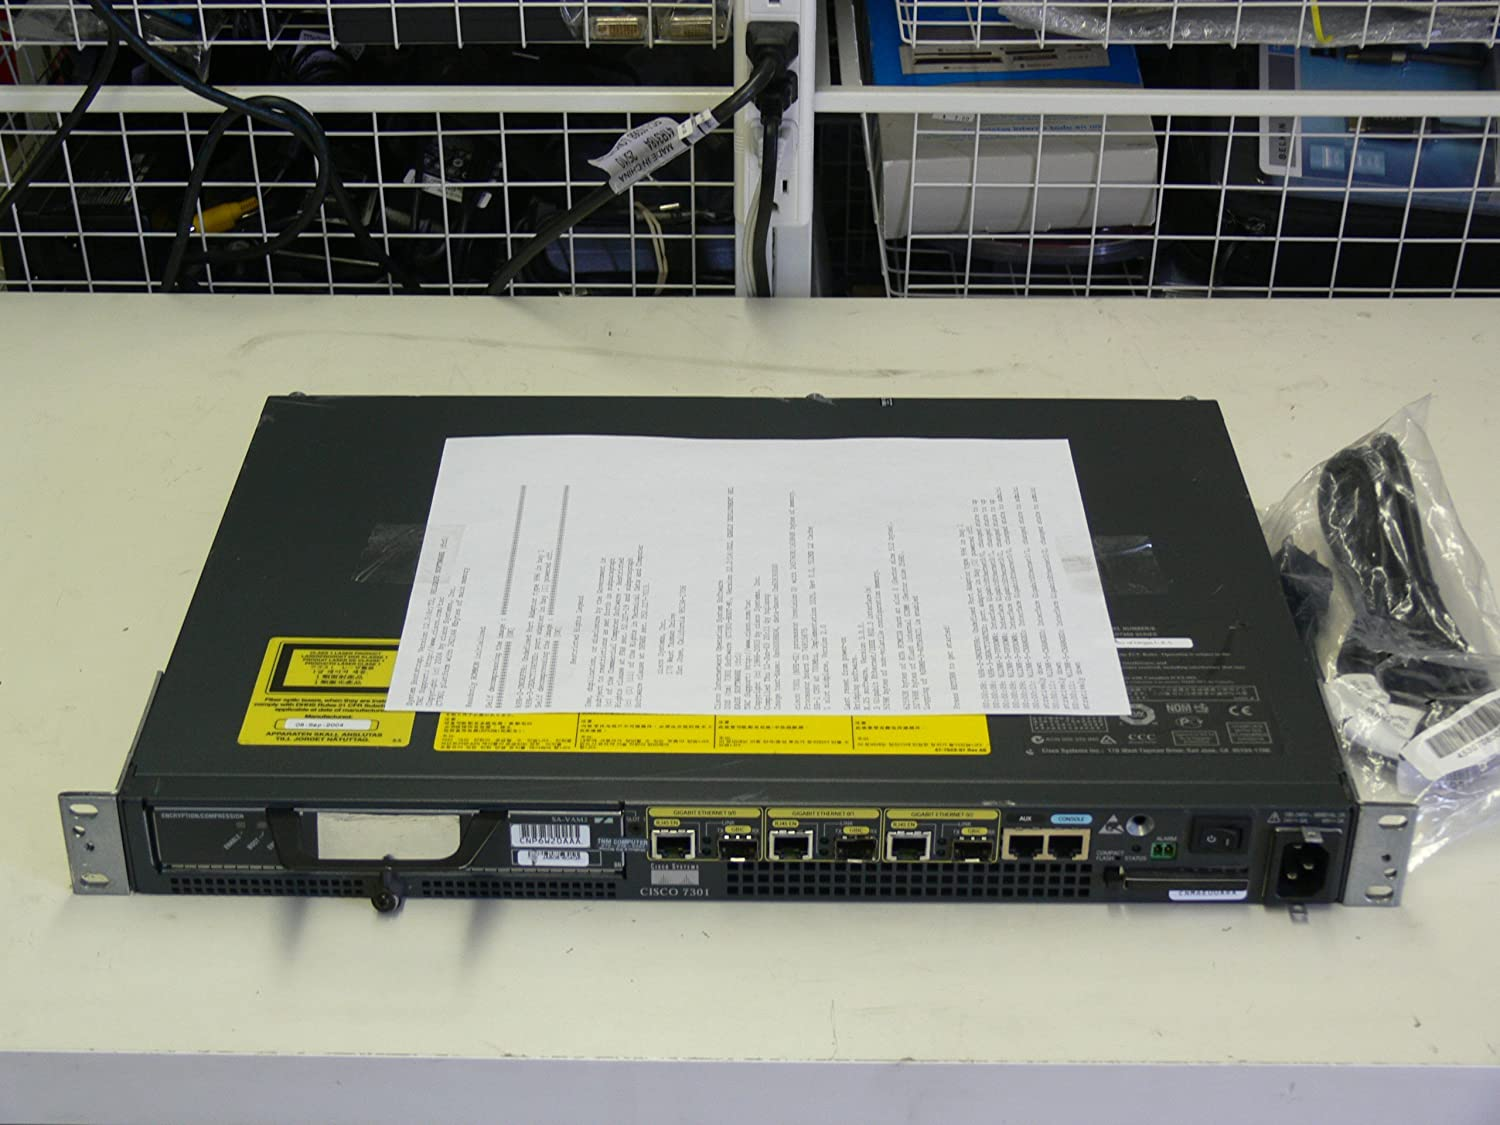 Cisco 7301 Router Chassis CISCO7301